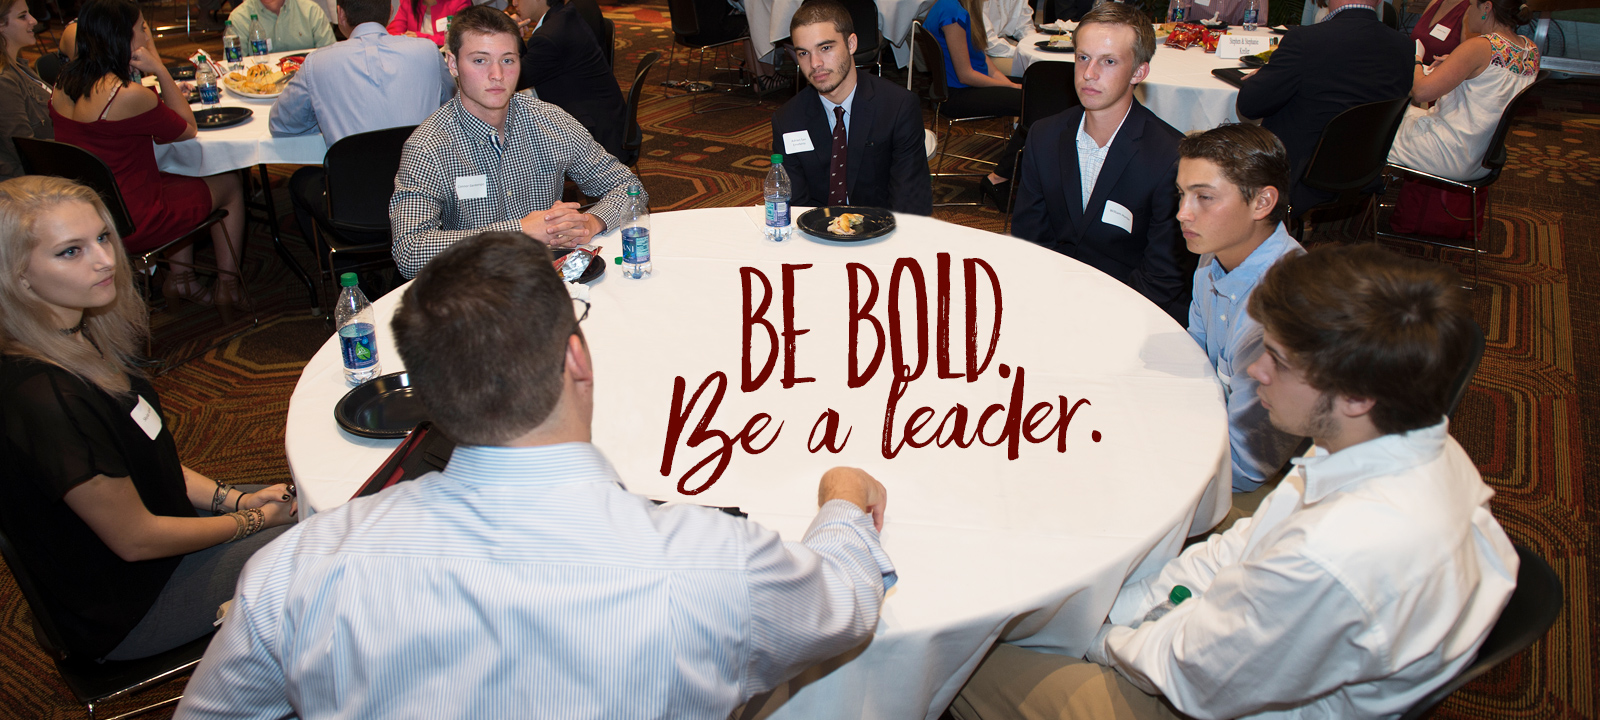 Executive mentors put you face-to-face with opportunity.